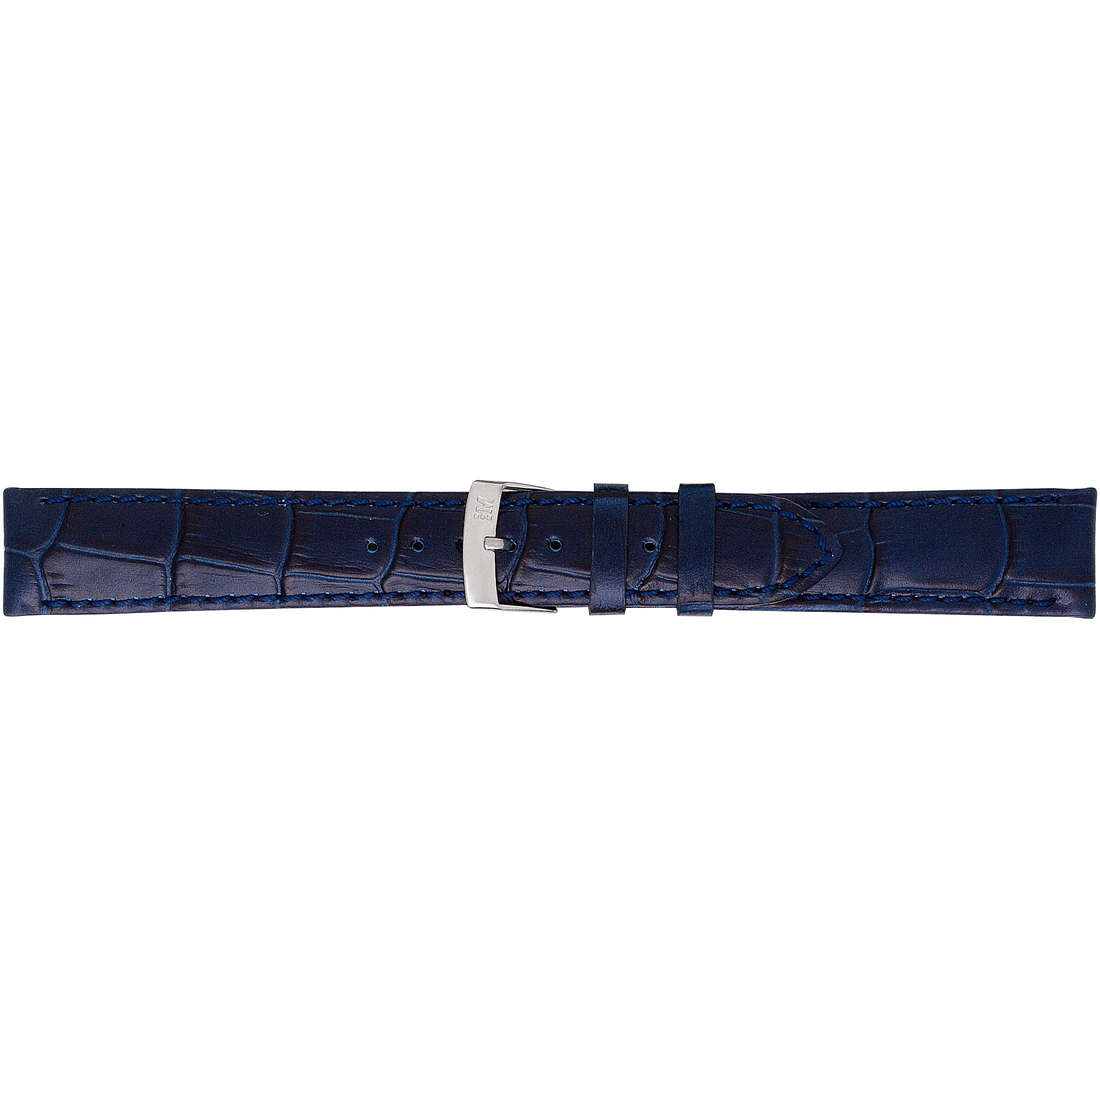 watch watch bands watch straps man Morellato Performance A01X2704656062CR16